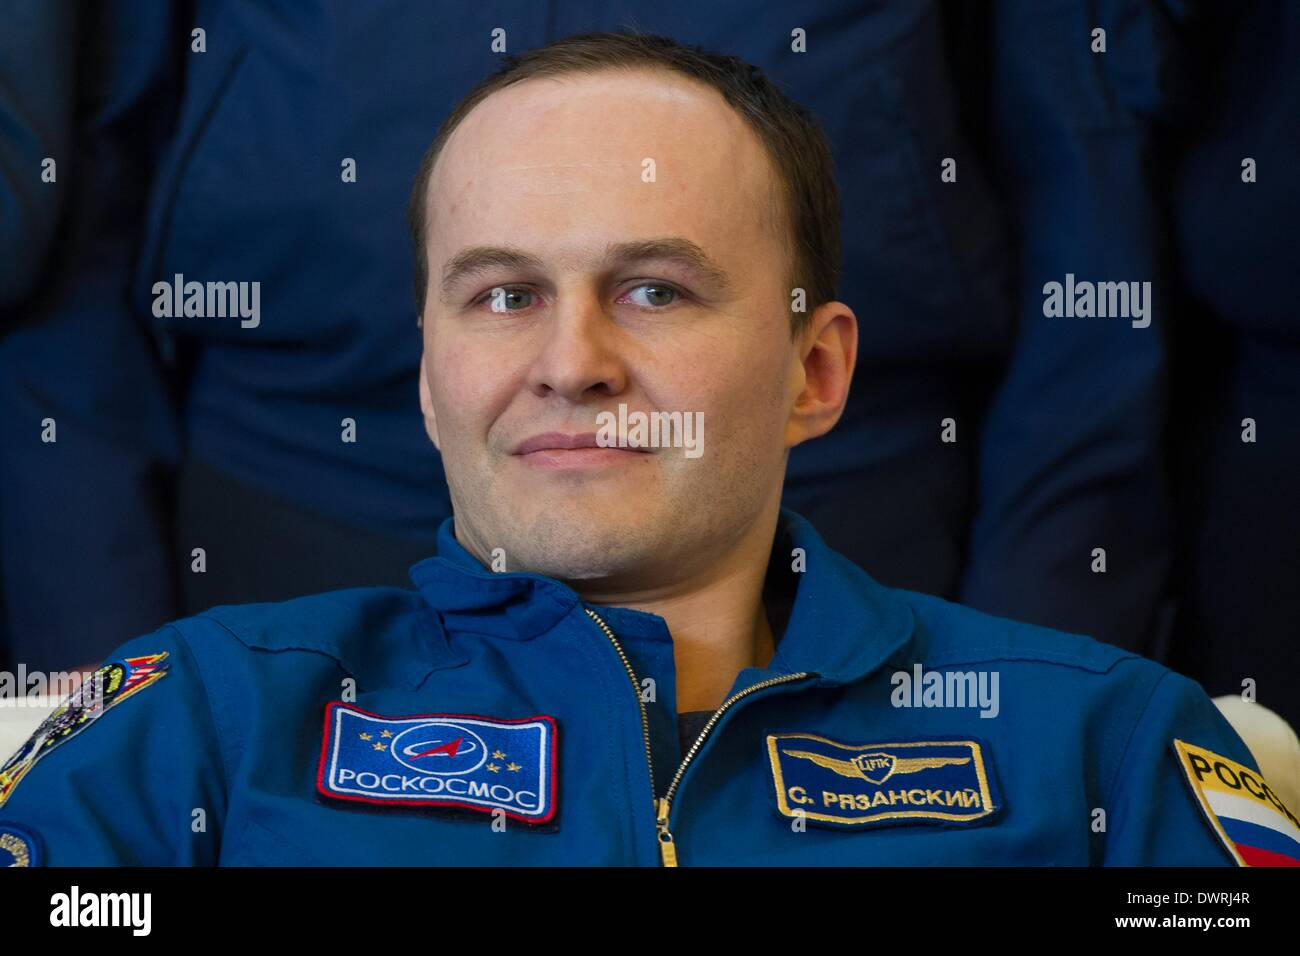 Karaganda airport, Kazakhstan. 11th March, 2014. International Space State Expedition 38 cosmonaut Sergey Ryazanskiy of the Russian Federal Space Agency during a welcoming ceremony after landing in a Soyuz TMA-10M spacecraft March 11, 2014 held at the Karaganda airport, Kazakhstan. Hopkins, Kotov and Ryazanskiy returned to Earth after five and a half months onboard the International Space Station. Credit:  Planetpix/Alamy Live News - Stock Image